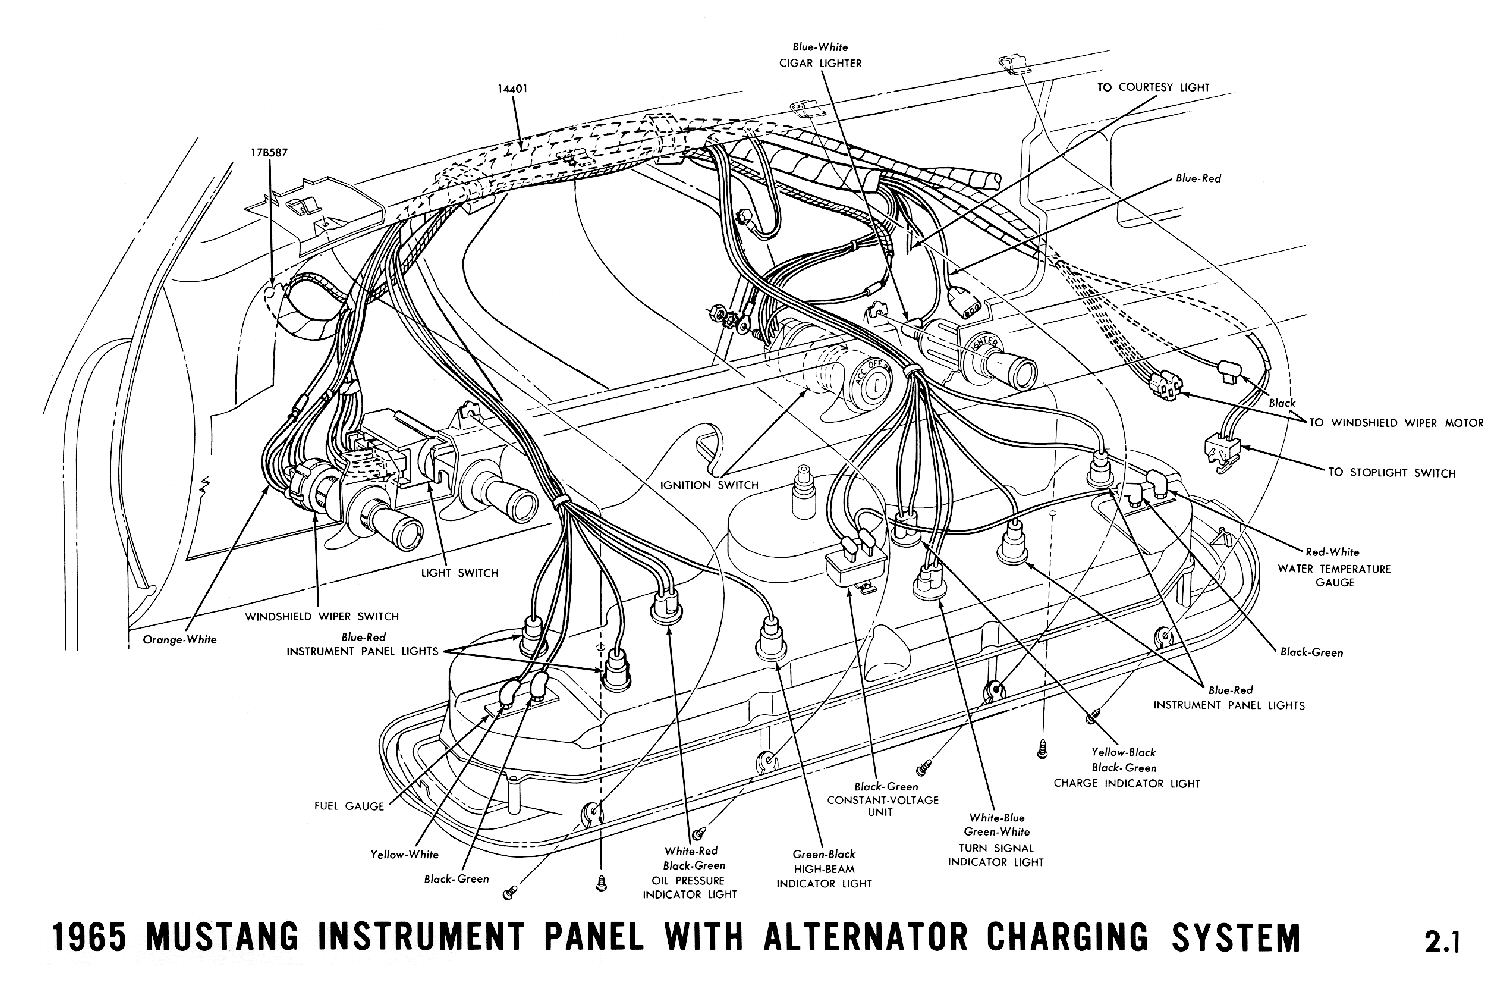 1965 mustang wiring diagrams average joe restoration rh averagejoerestoration com 1966 mustang wiring harness for sale 66 mustang wiring harness